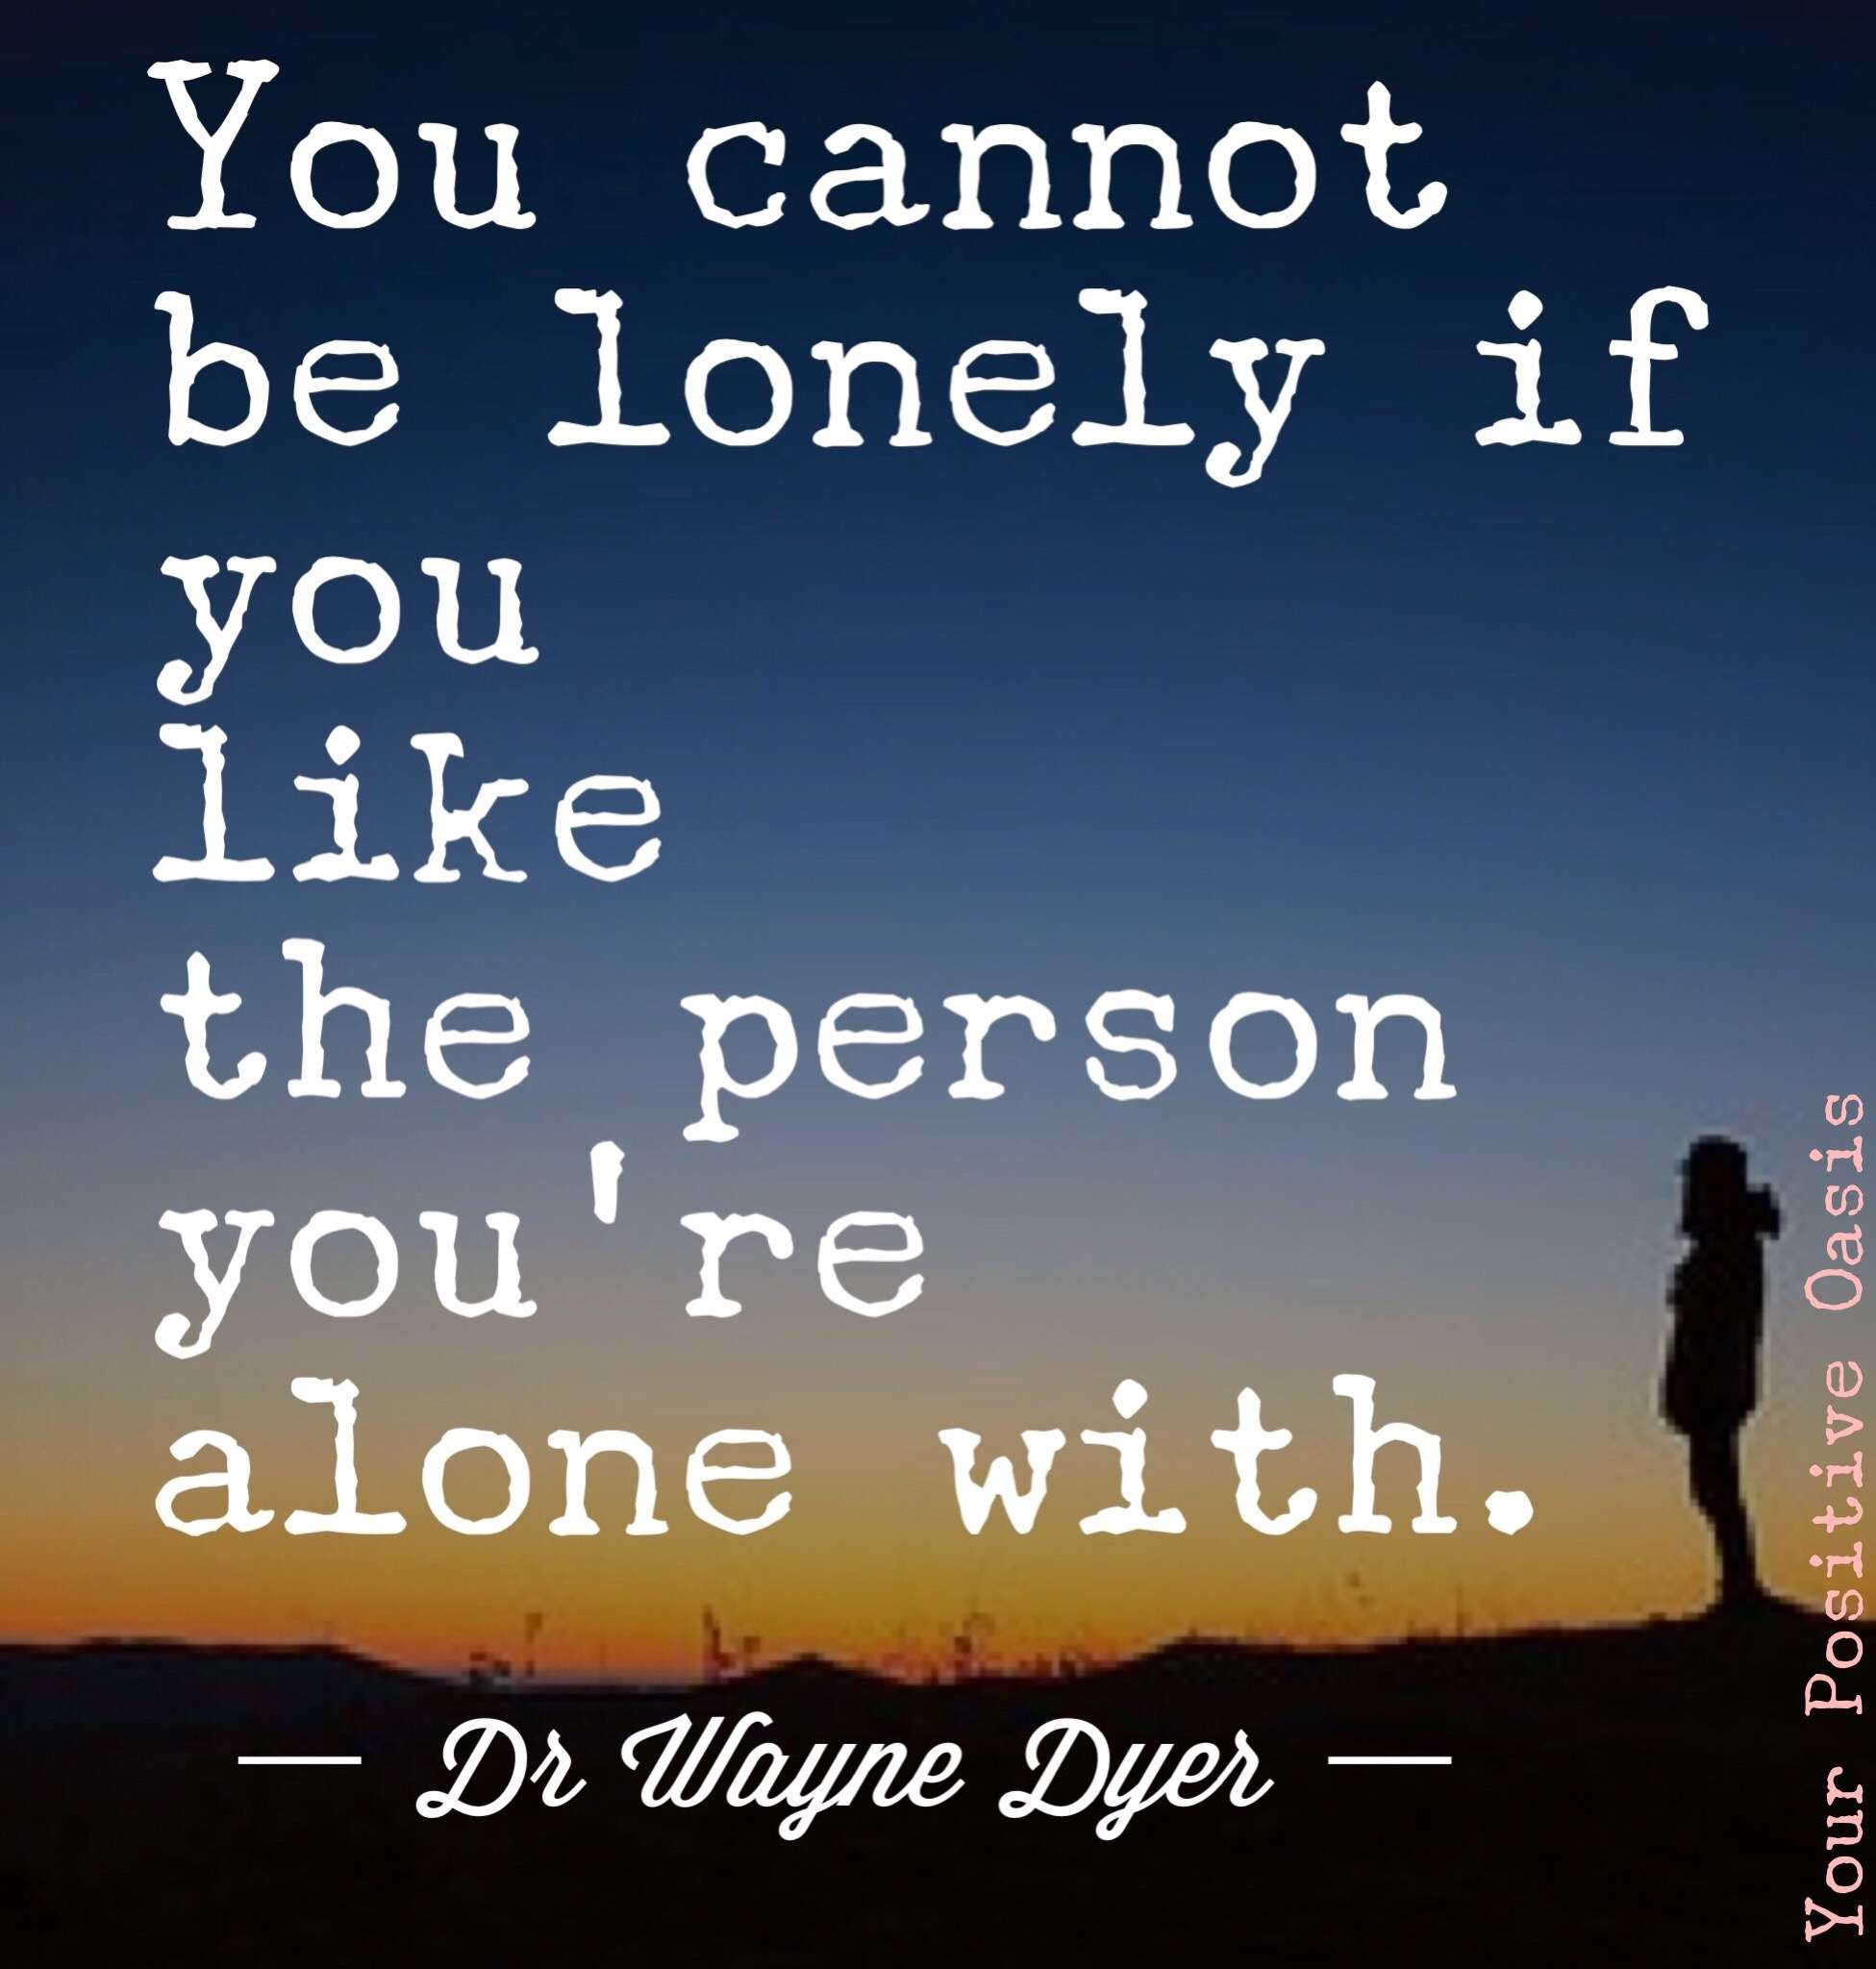 wayne dyer On august 29th in 2015, one of the most influential and inspirational people in self-development, passed away dr wayne dyer, the famous self-help guru, was just 75 years old when he passed away.